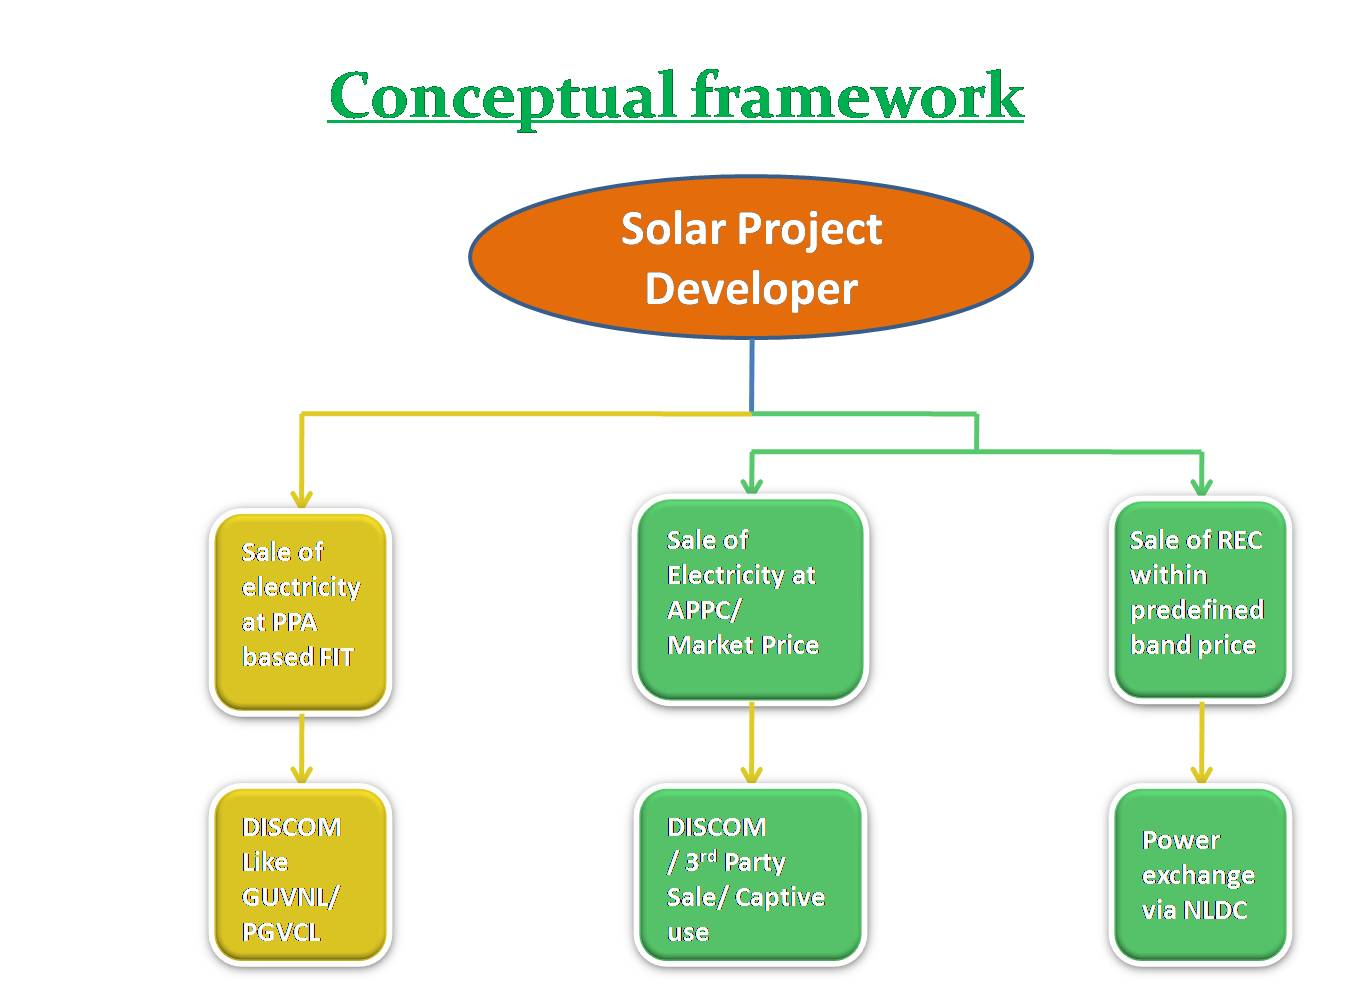 Solar Pv Solar Thermal Hydro Power Liaison Land